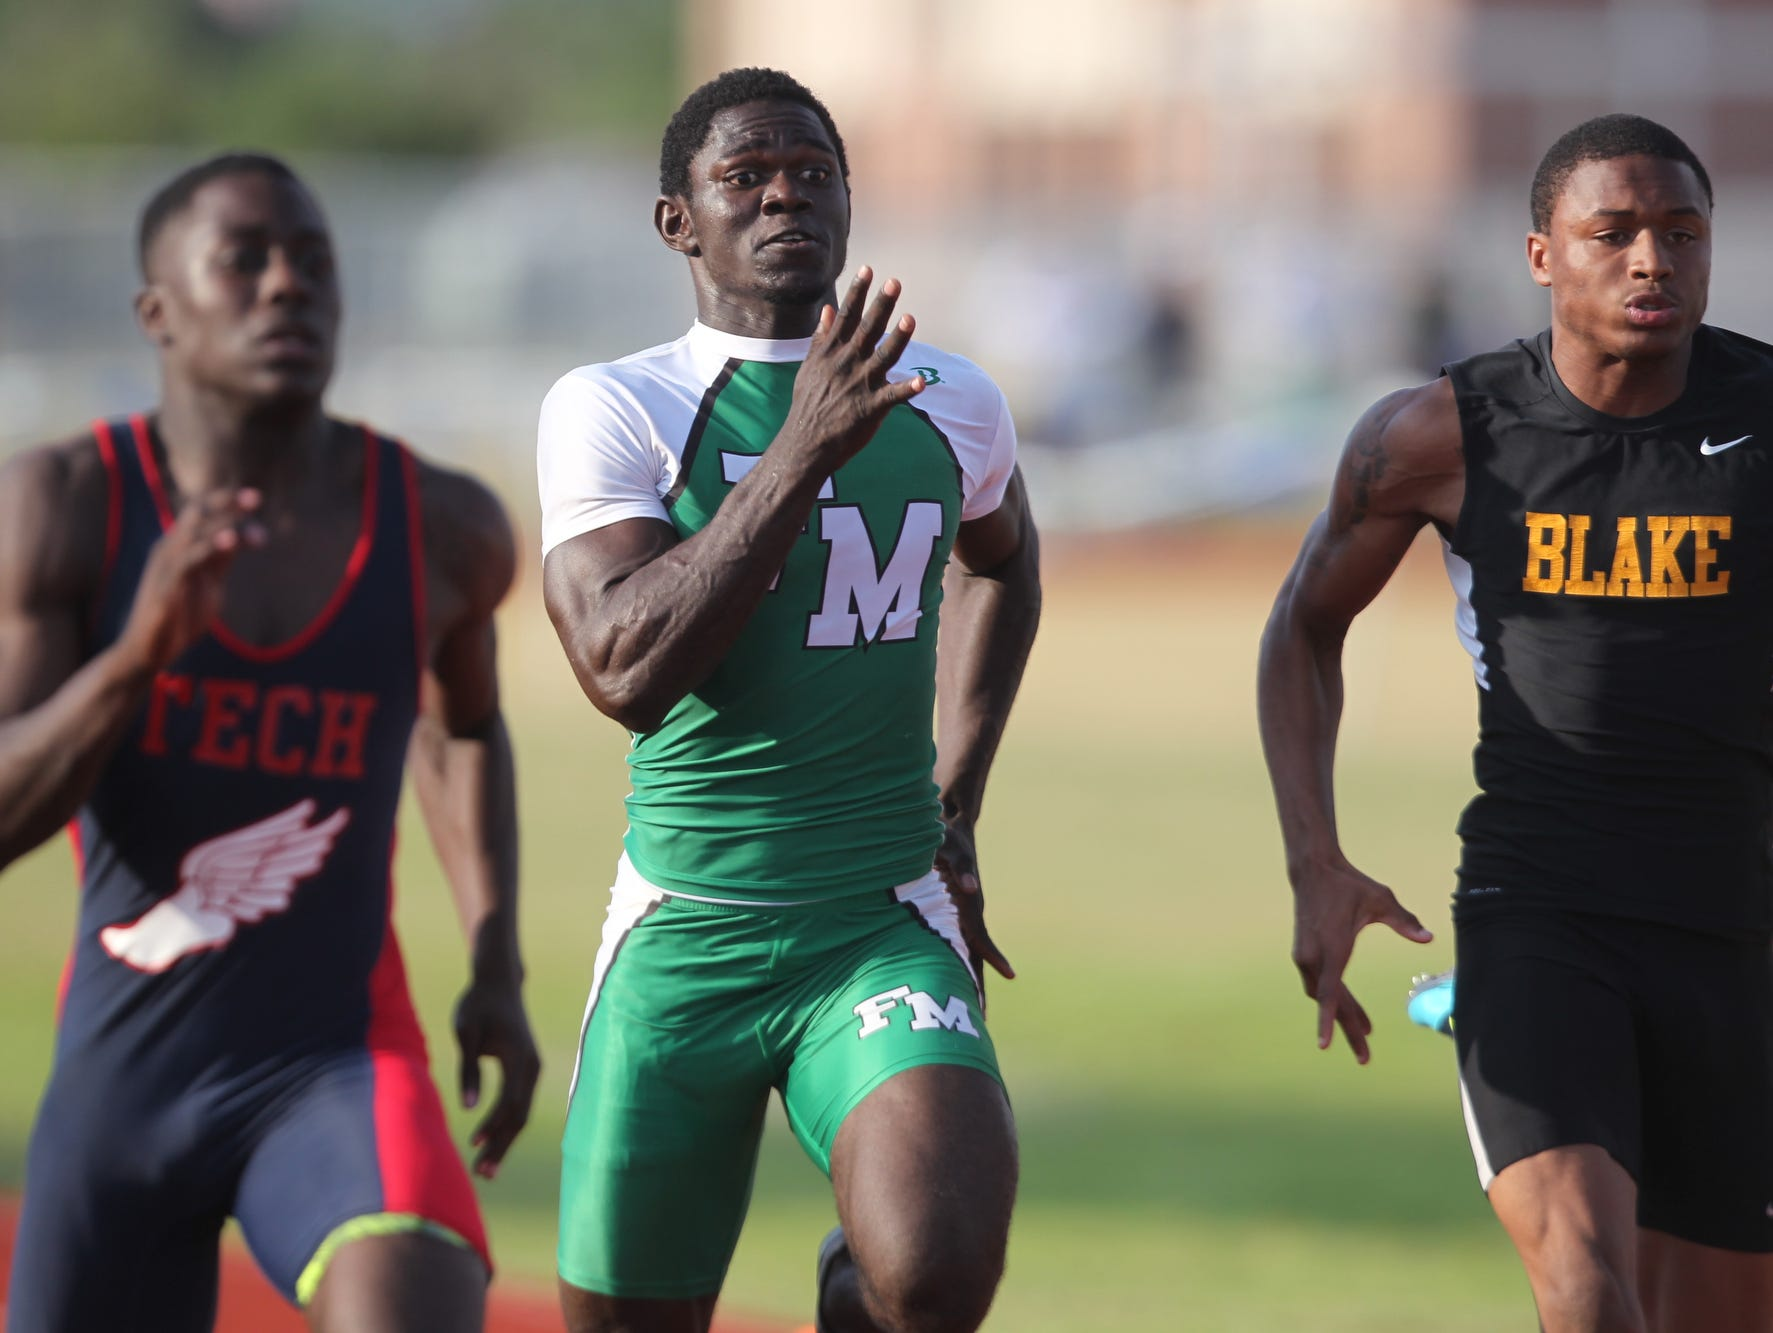 Scenes from the Region 3A-3 track meet at Charlotte High in Punta Gorda.